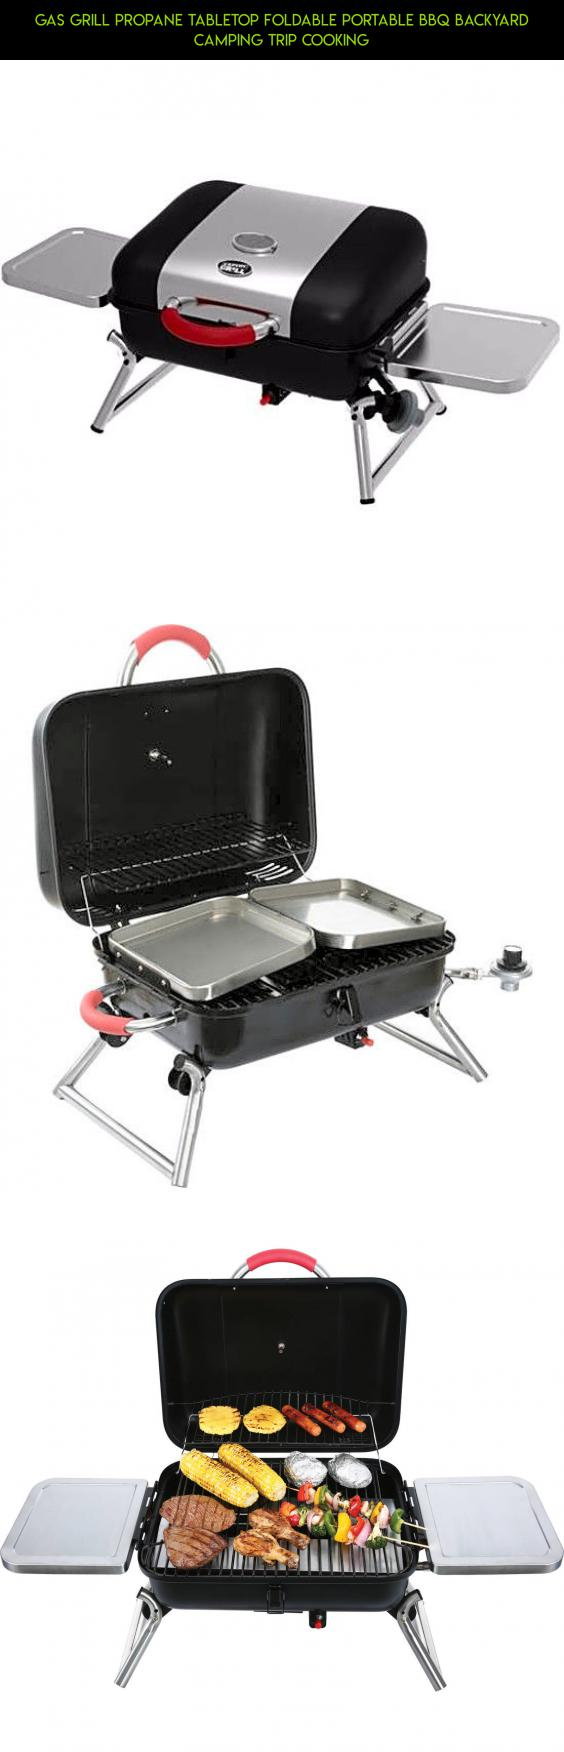 gas grill propane tabletop foldable portable bbq backyard camping